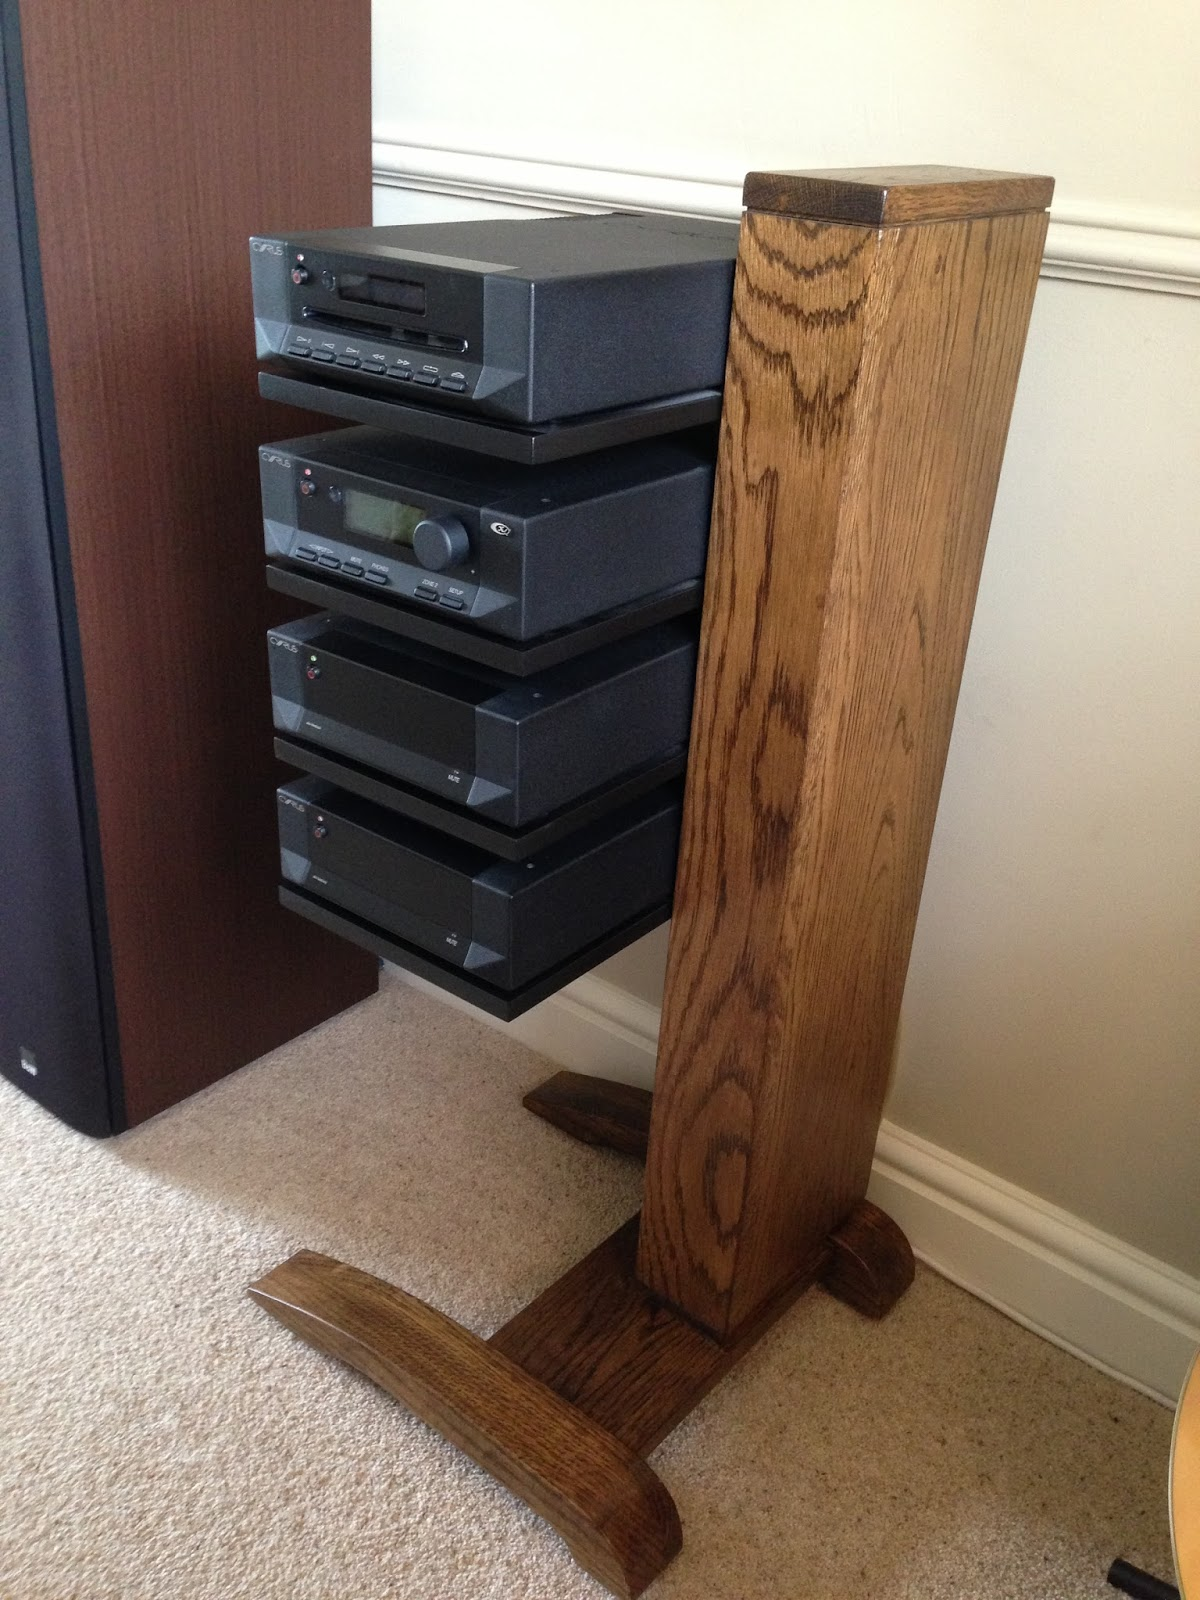 Hifi Rack Oak An Alternative To Cyrus Audio 39s Hark Rack